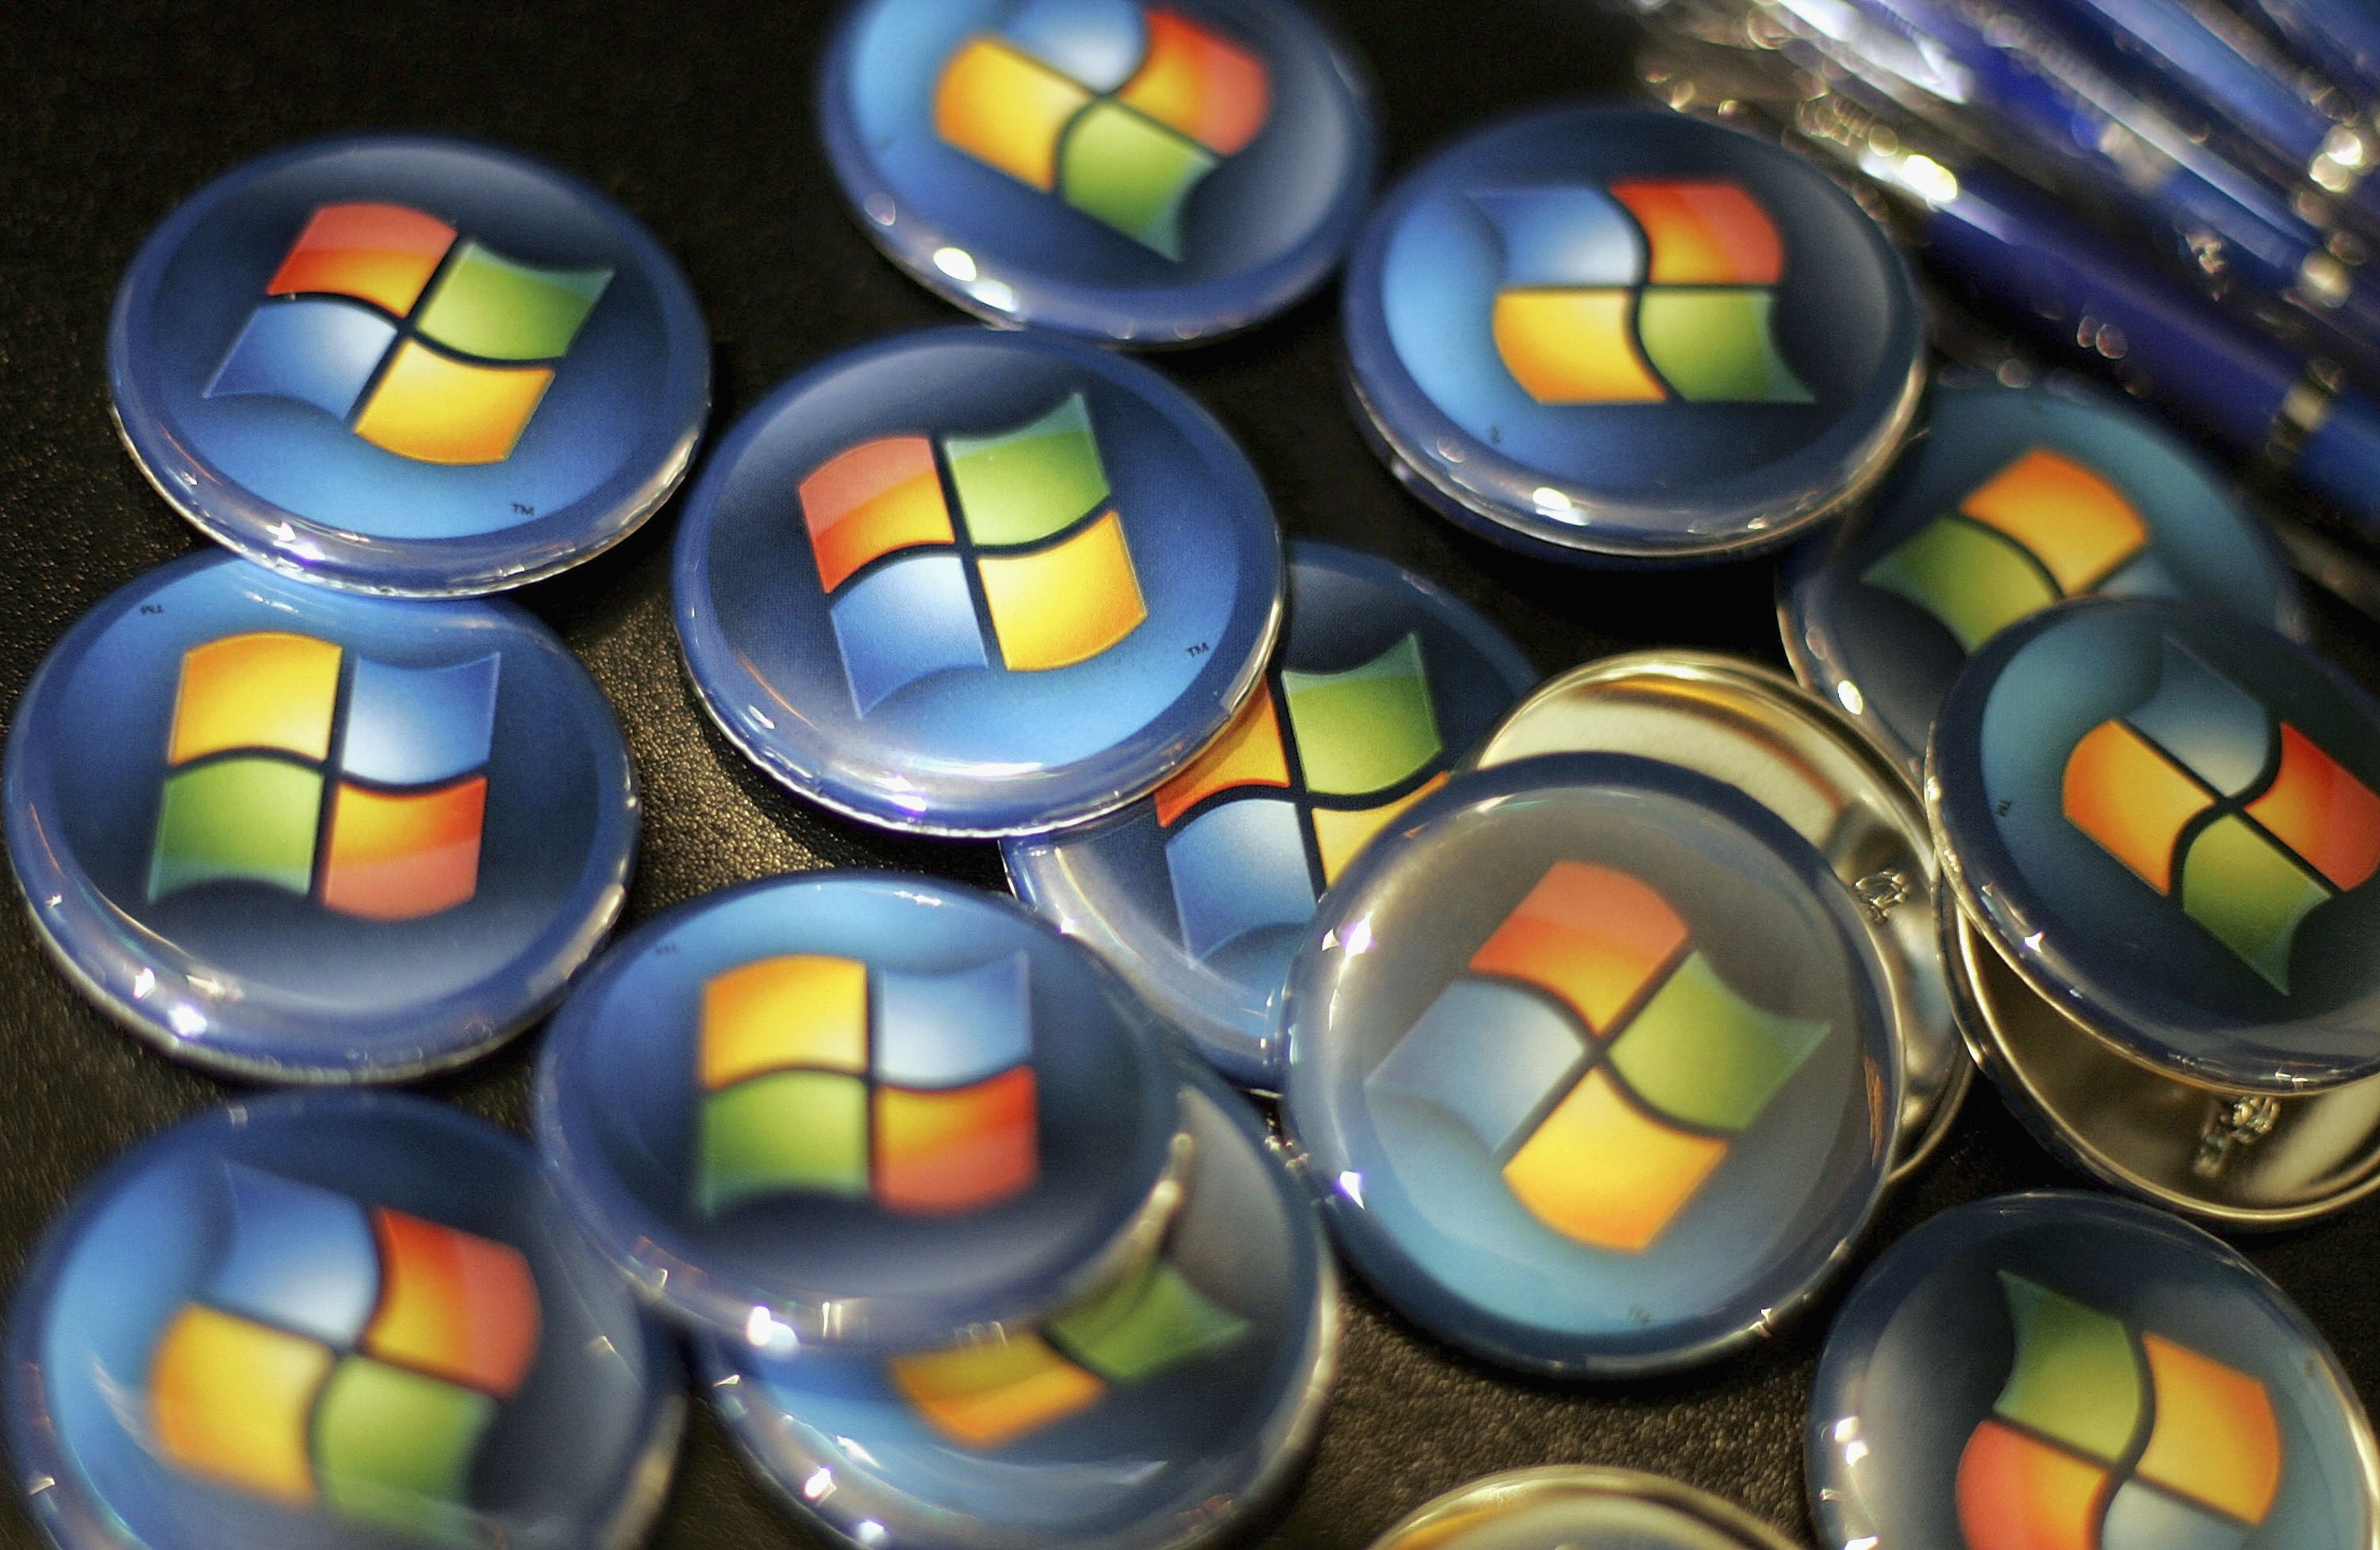 Buttons with the Microsoft logo are seen at a Comp USA store January 29, 2007 in San Francisco, California